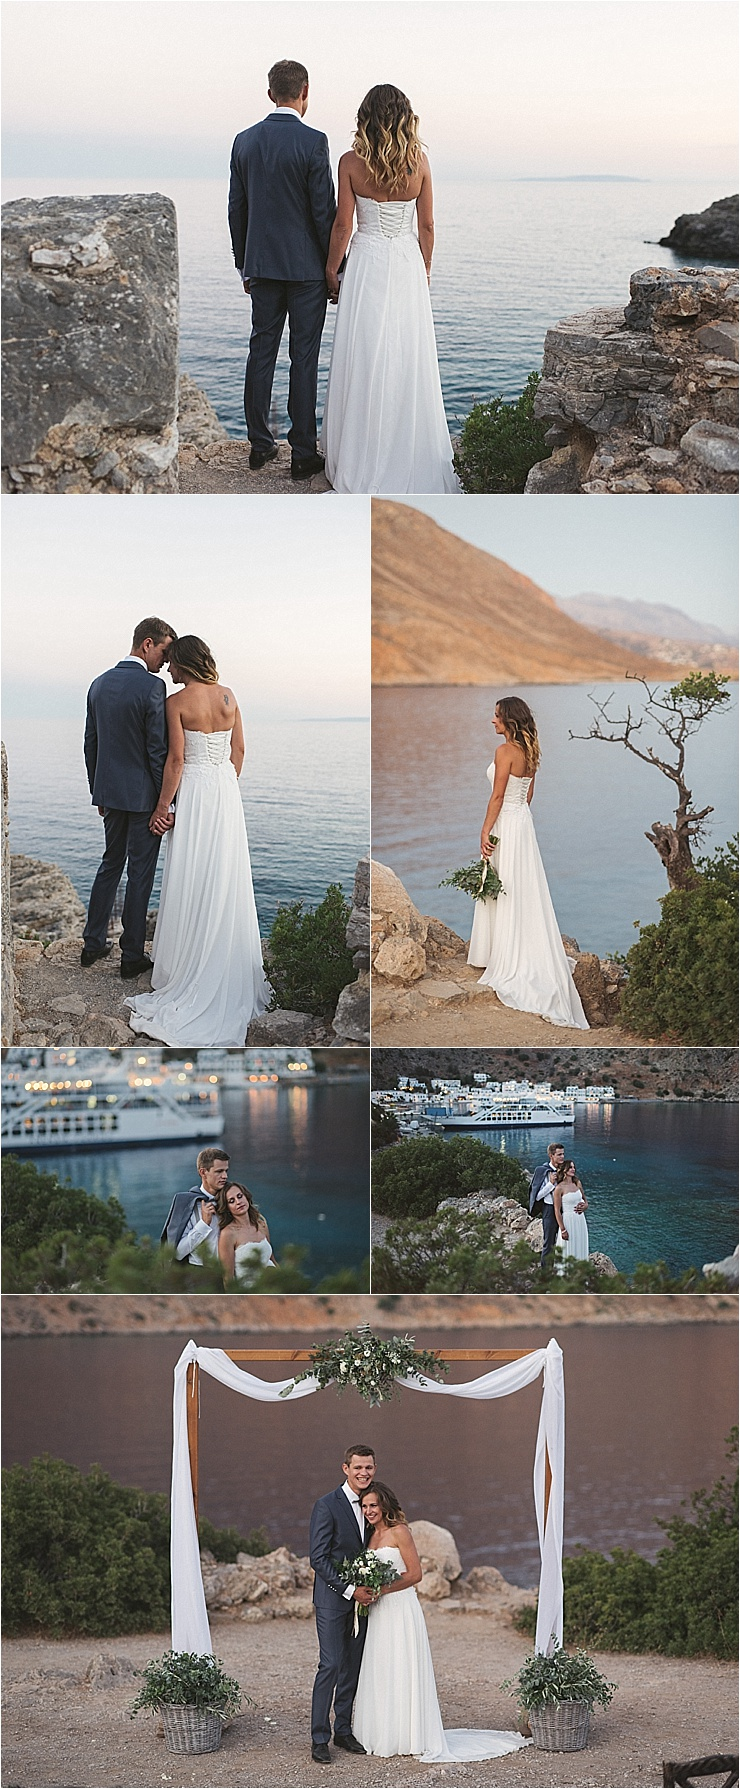 The sun sets behind the bride and groom in Crete by Andreas Markakis Photography